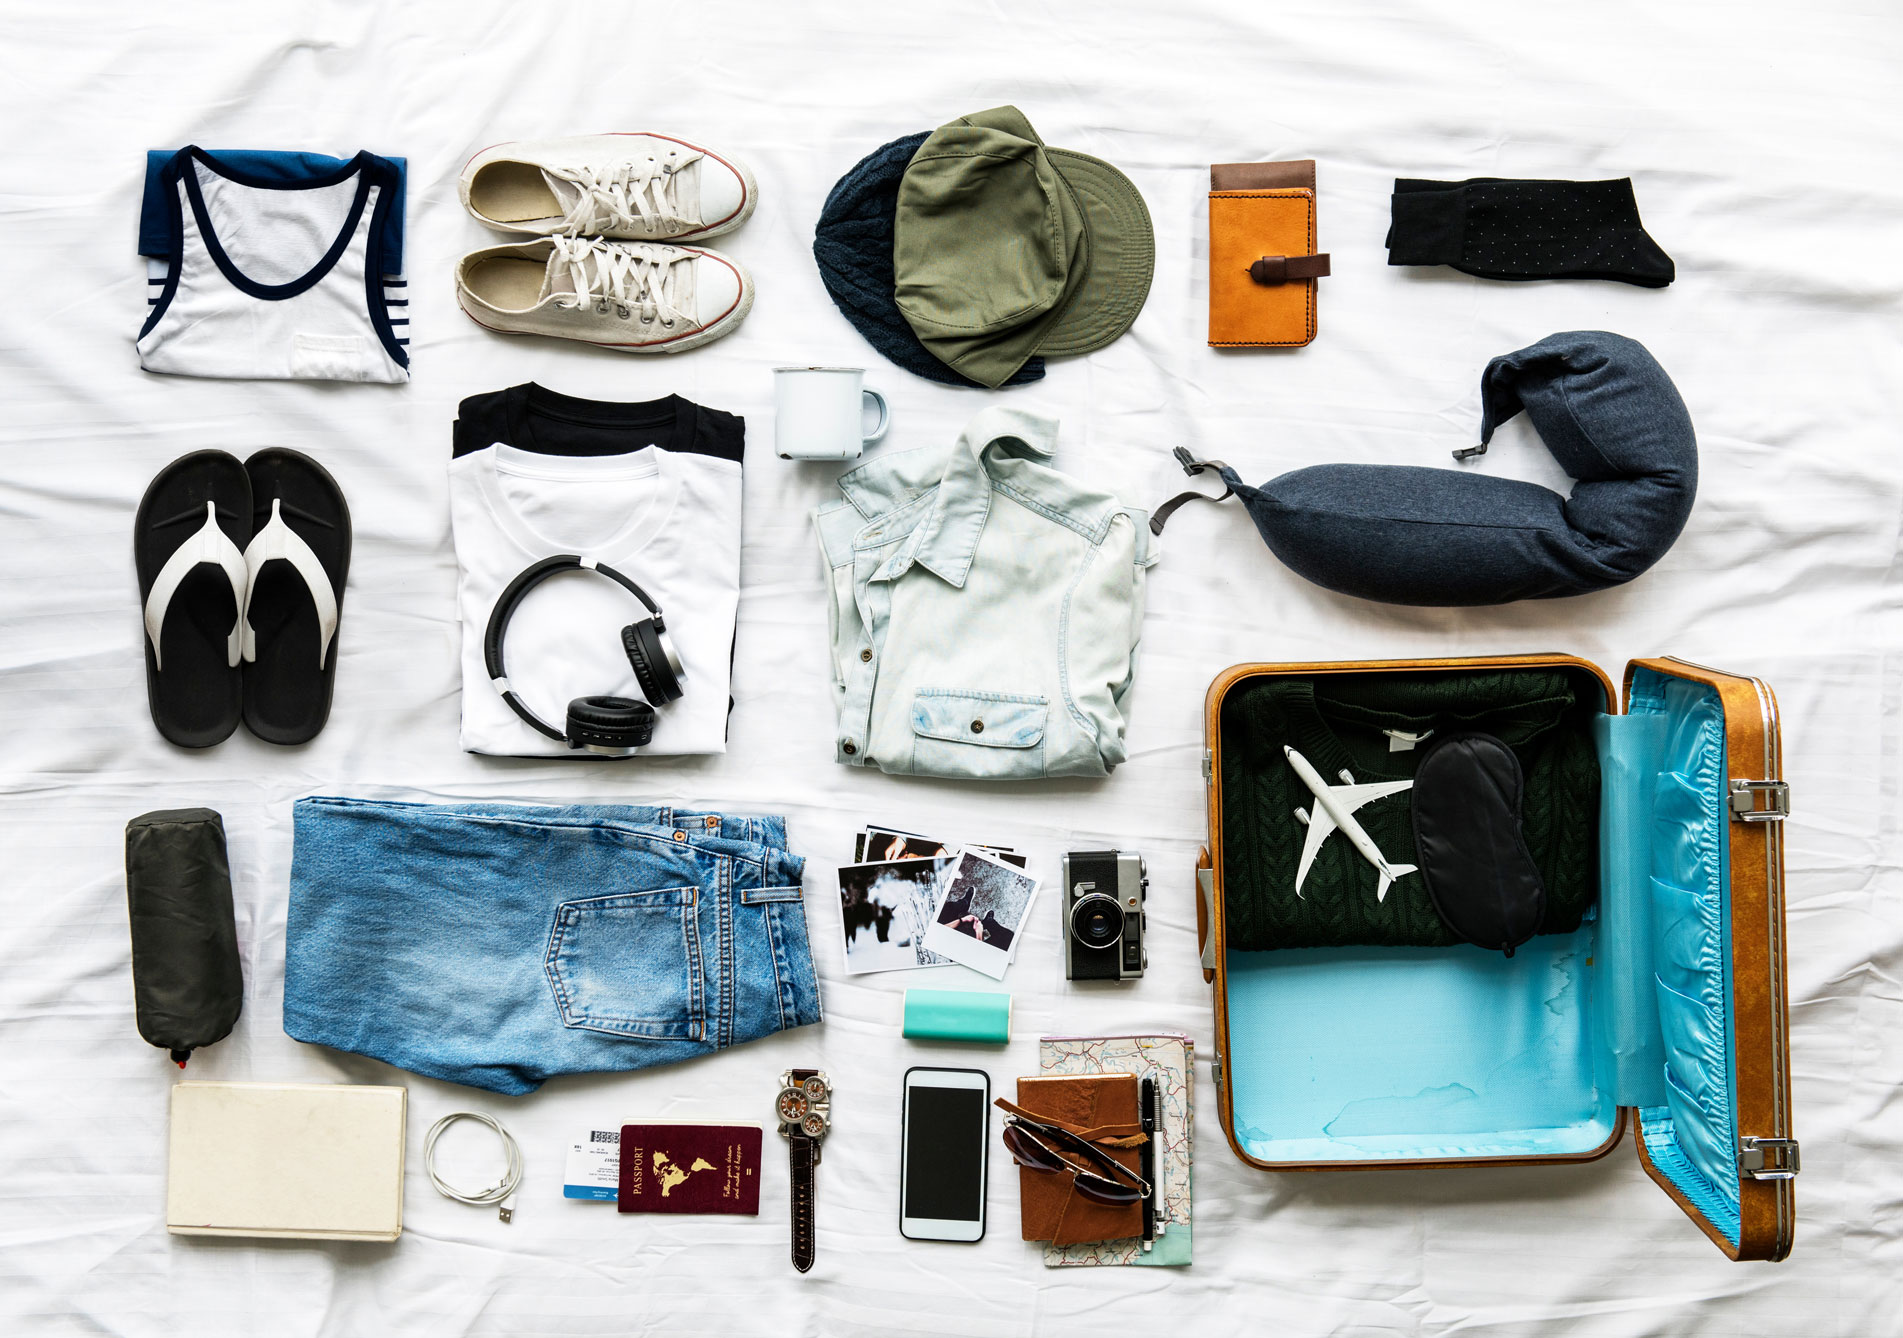 Ten Most Important Things You Have to Bring When You Travel